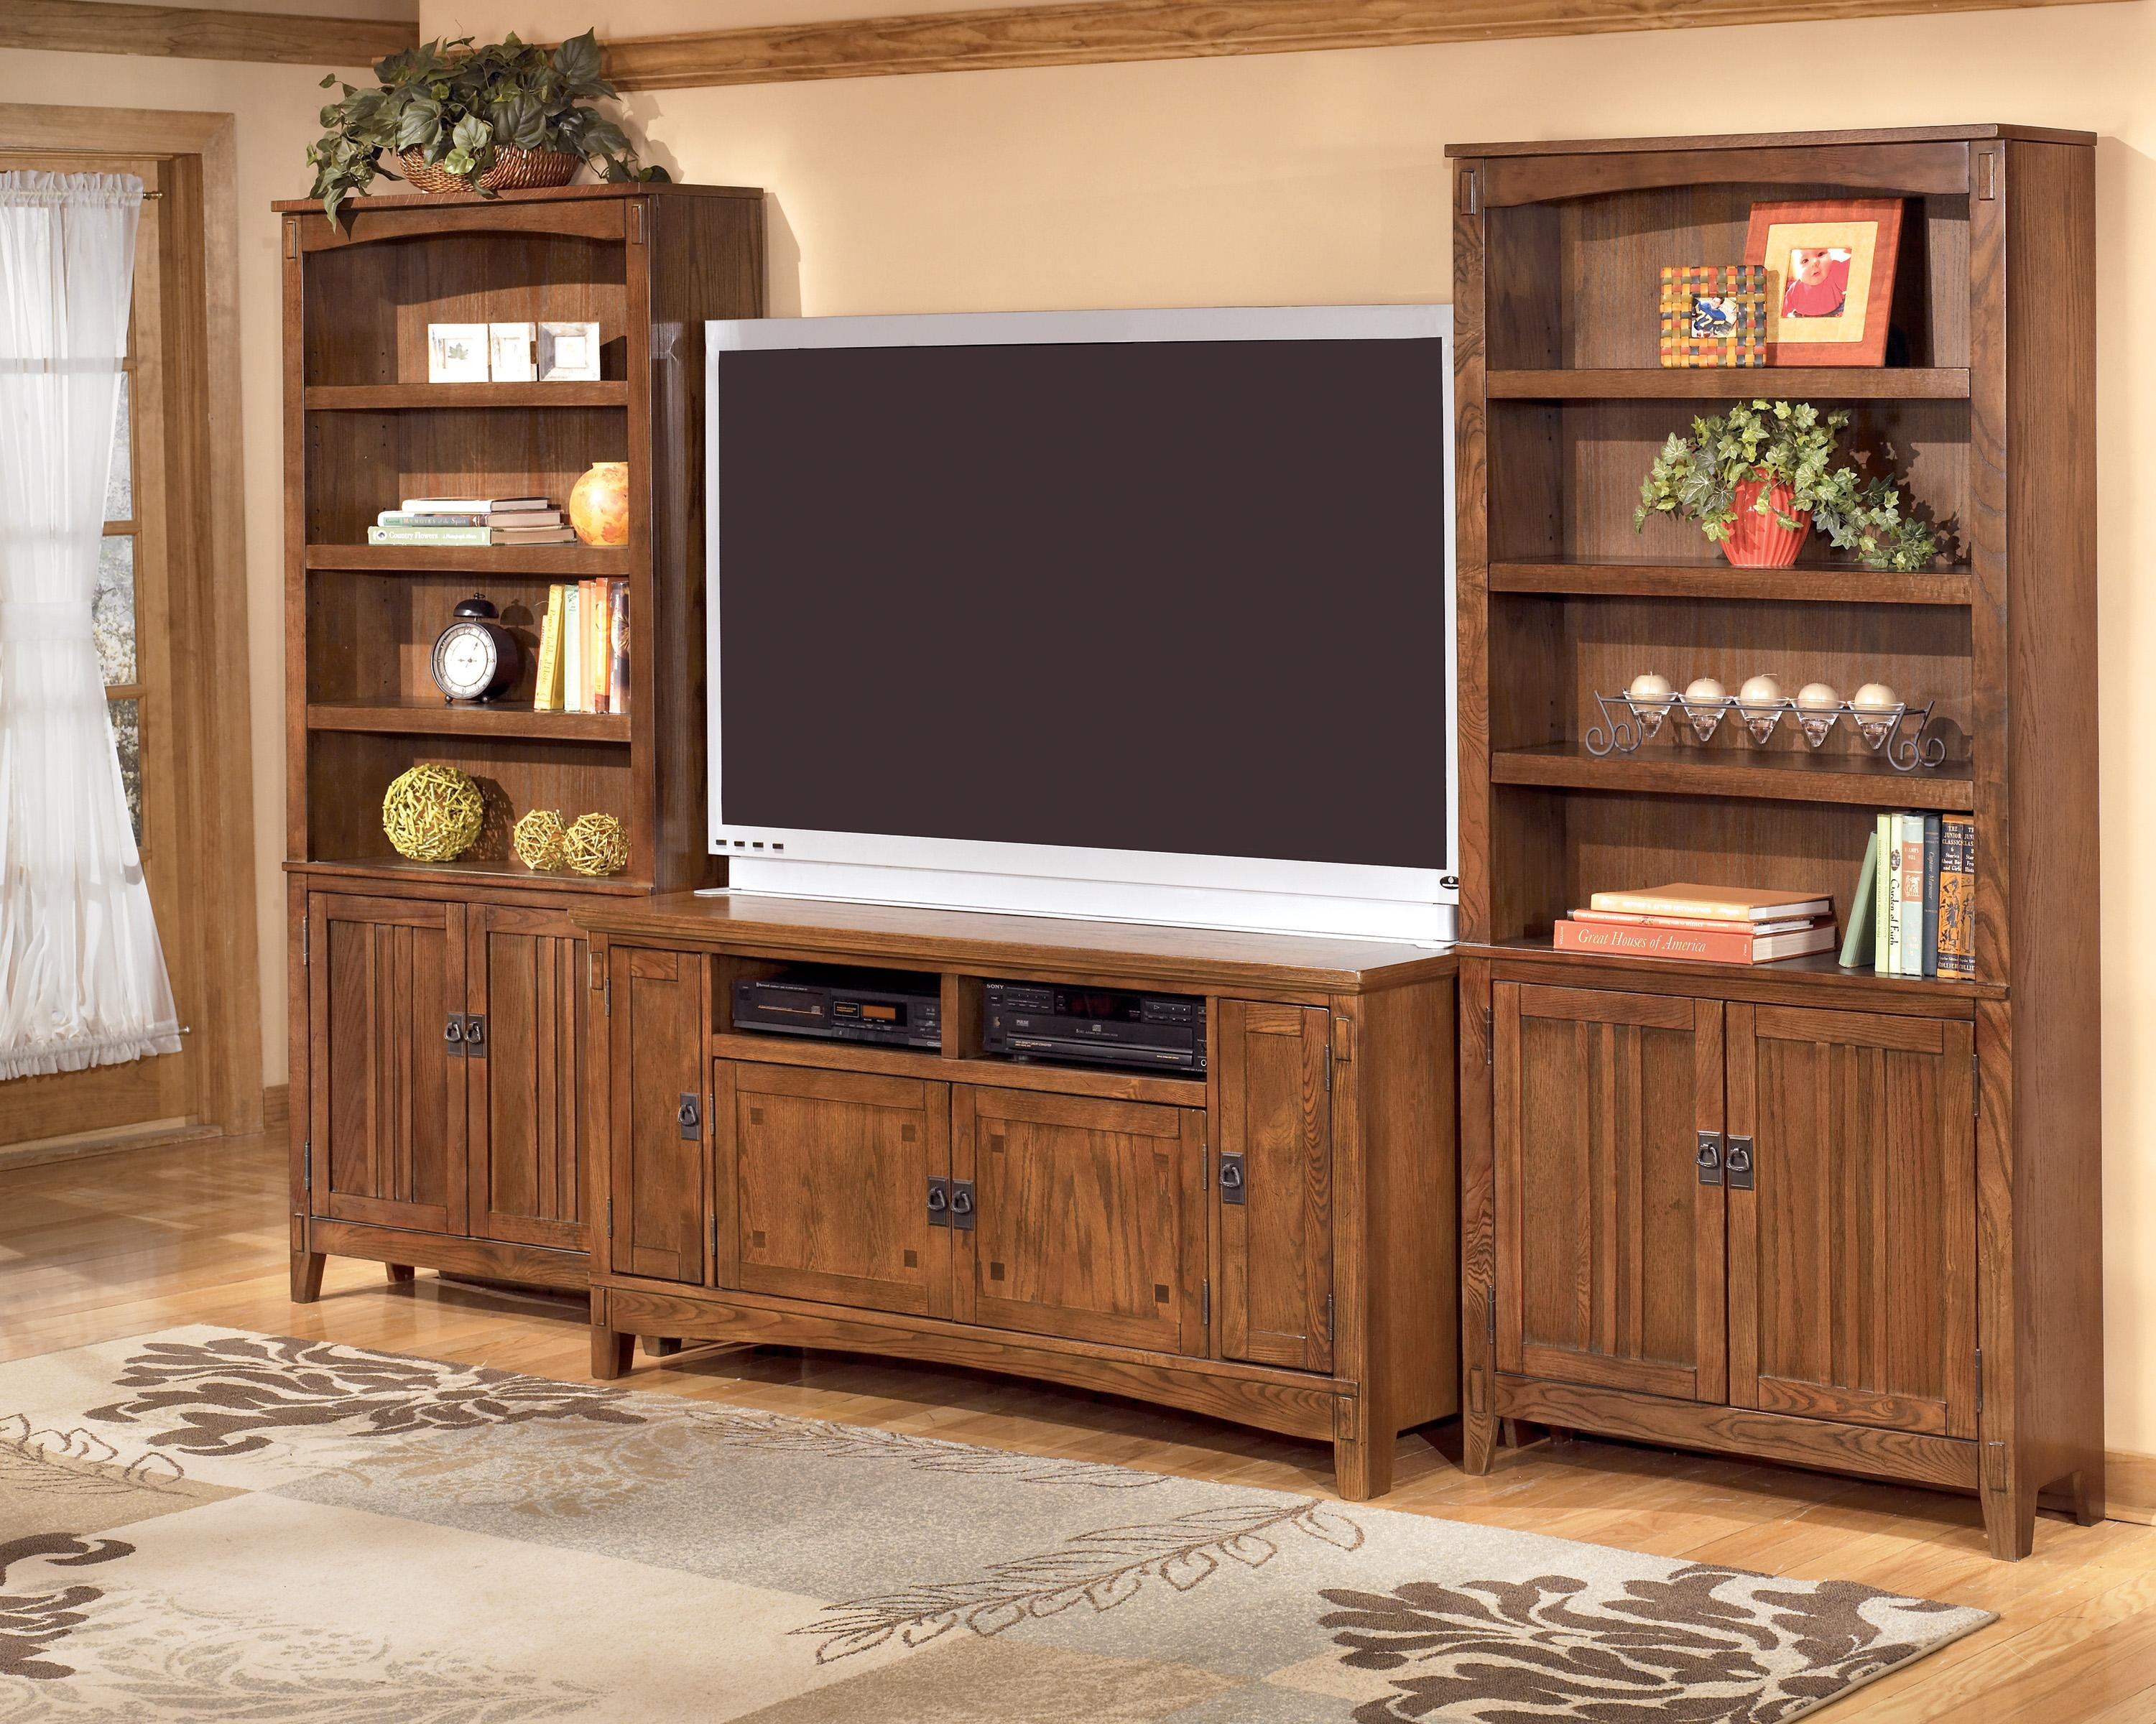 drawers carpet various regaling stands available television to centers vcd furniture cream cupboard mount player stand lamp simple and cushion shelves books wall ashley entertainment black dvd ar models cabinets quick tv with vase sophisticated plant plus